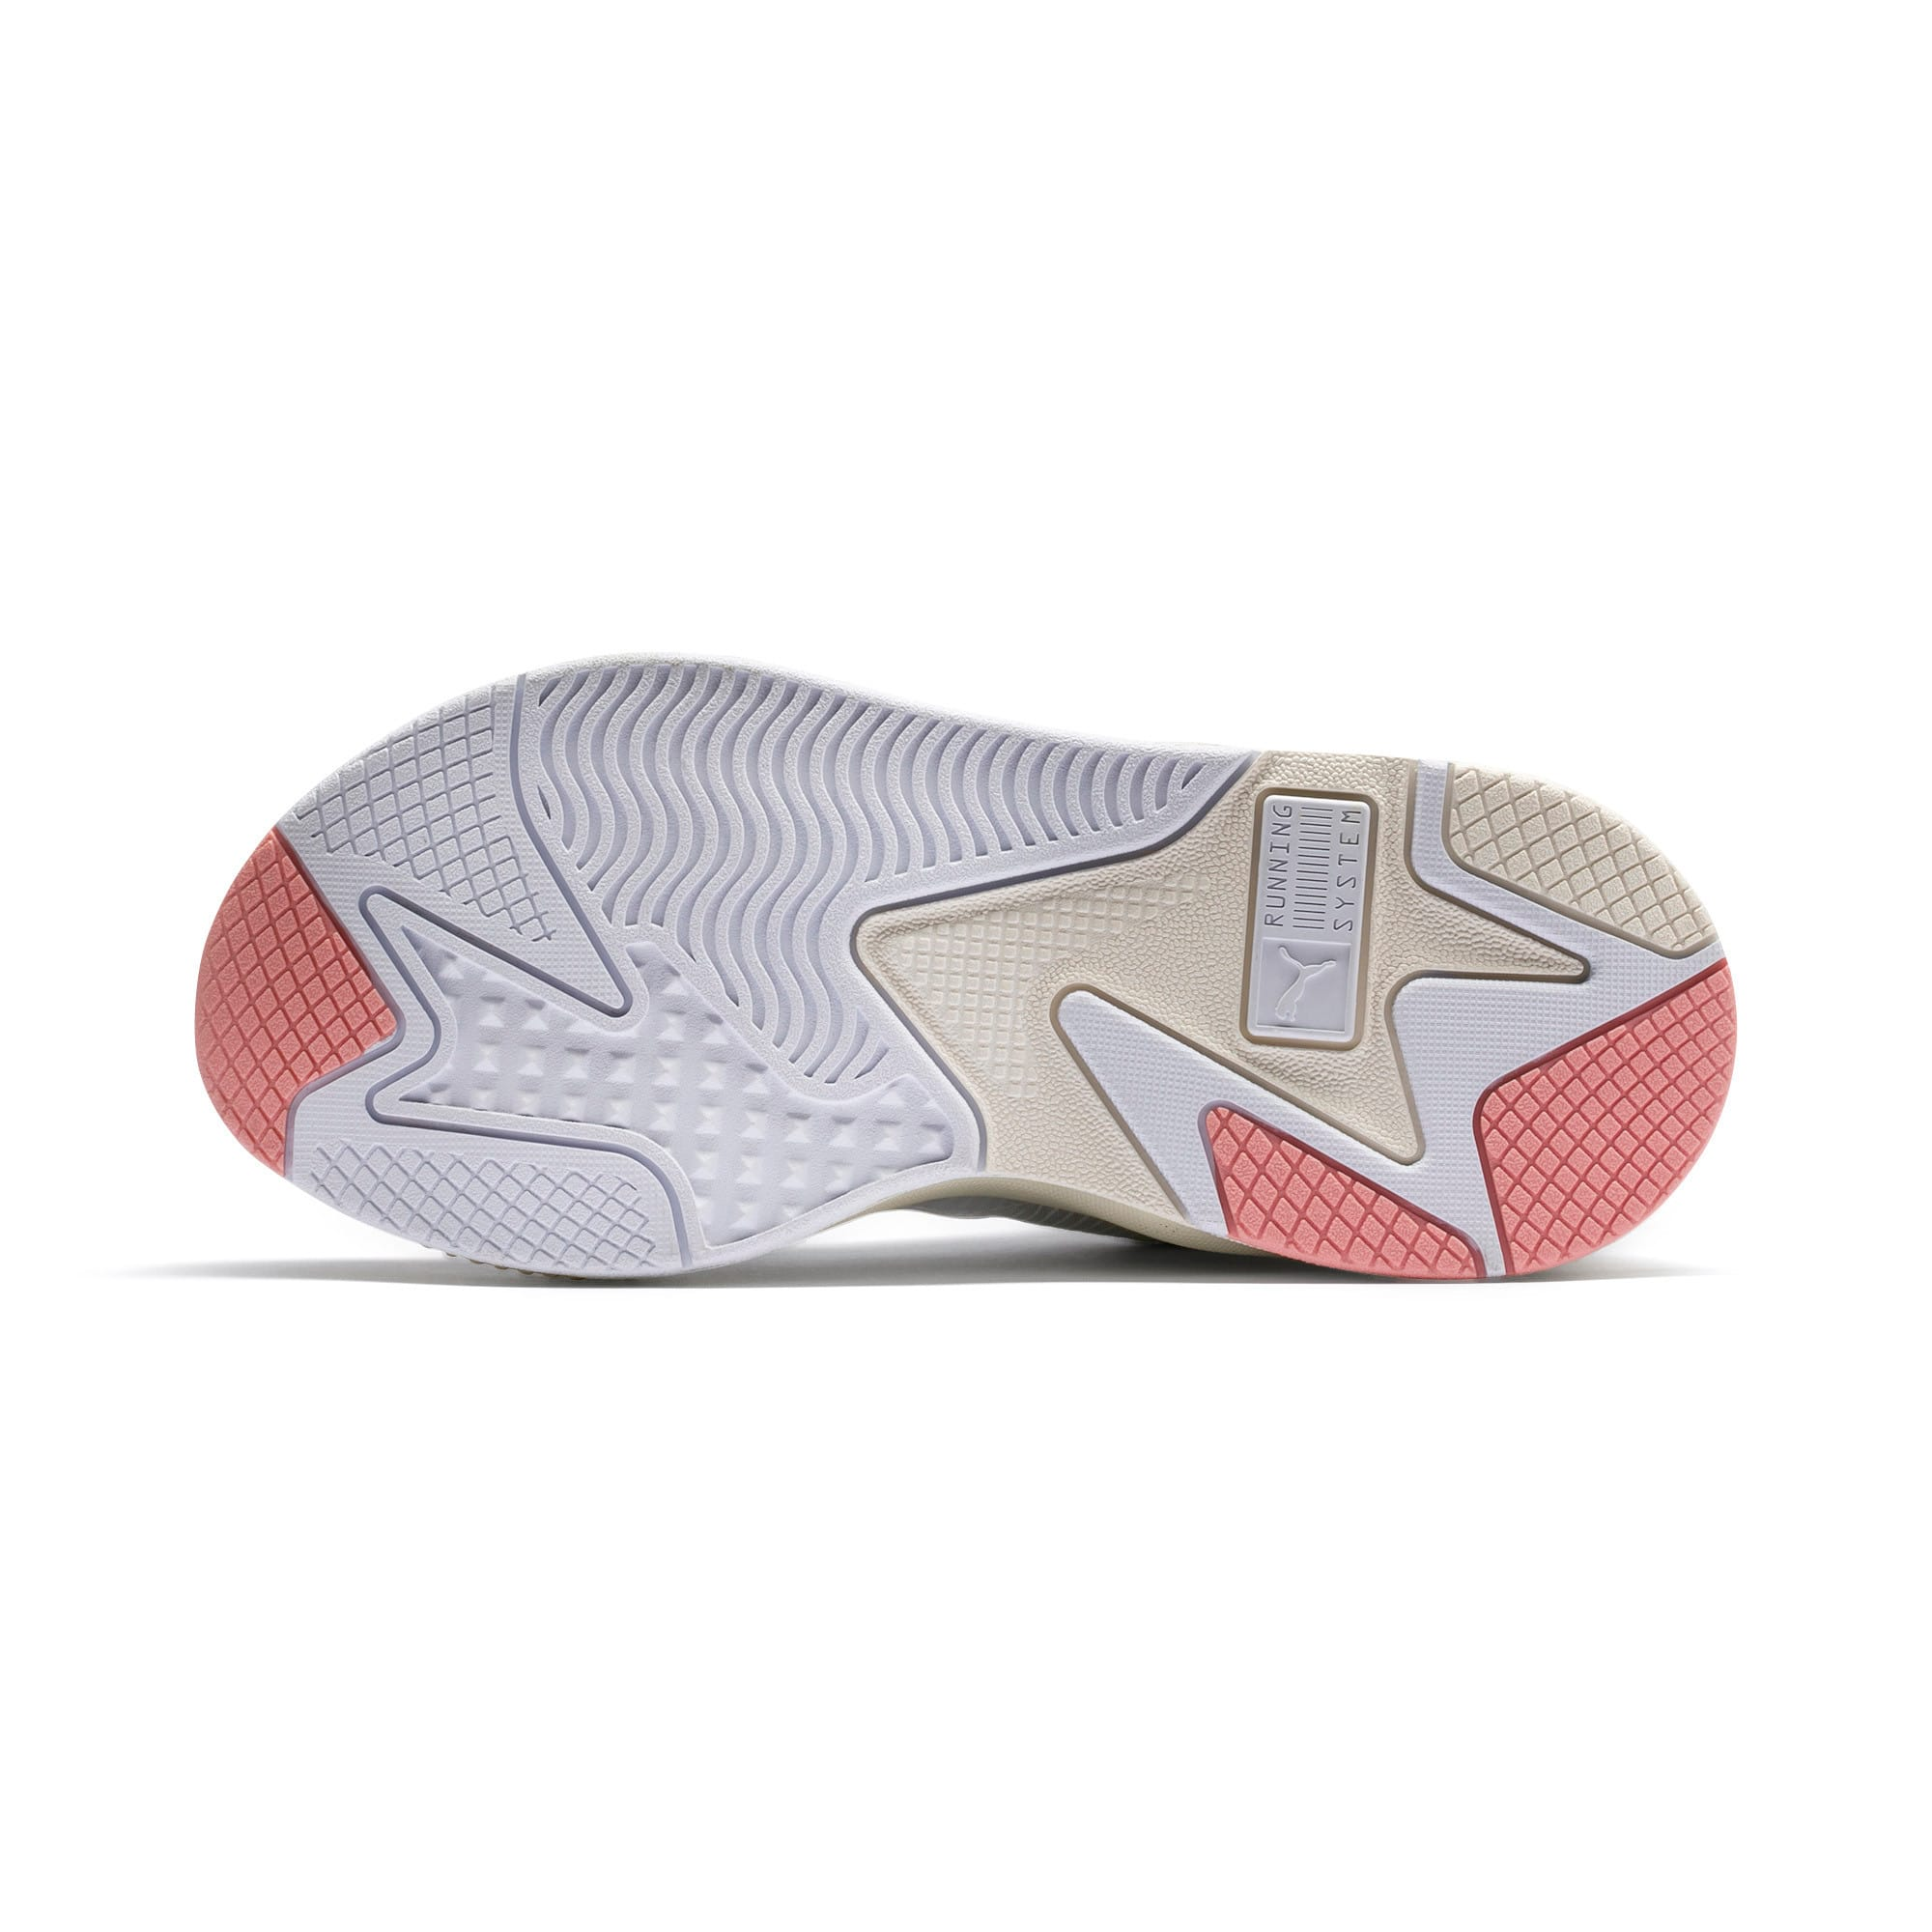 Thumbnail 5 of RS-X TECH Sneakers, Puma White-Peach Bud, medium